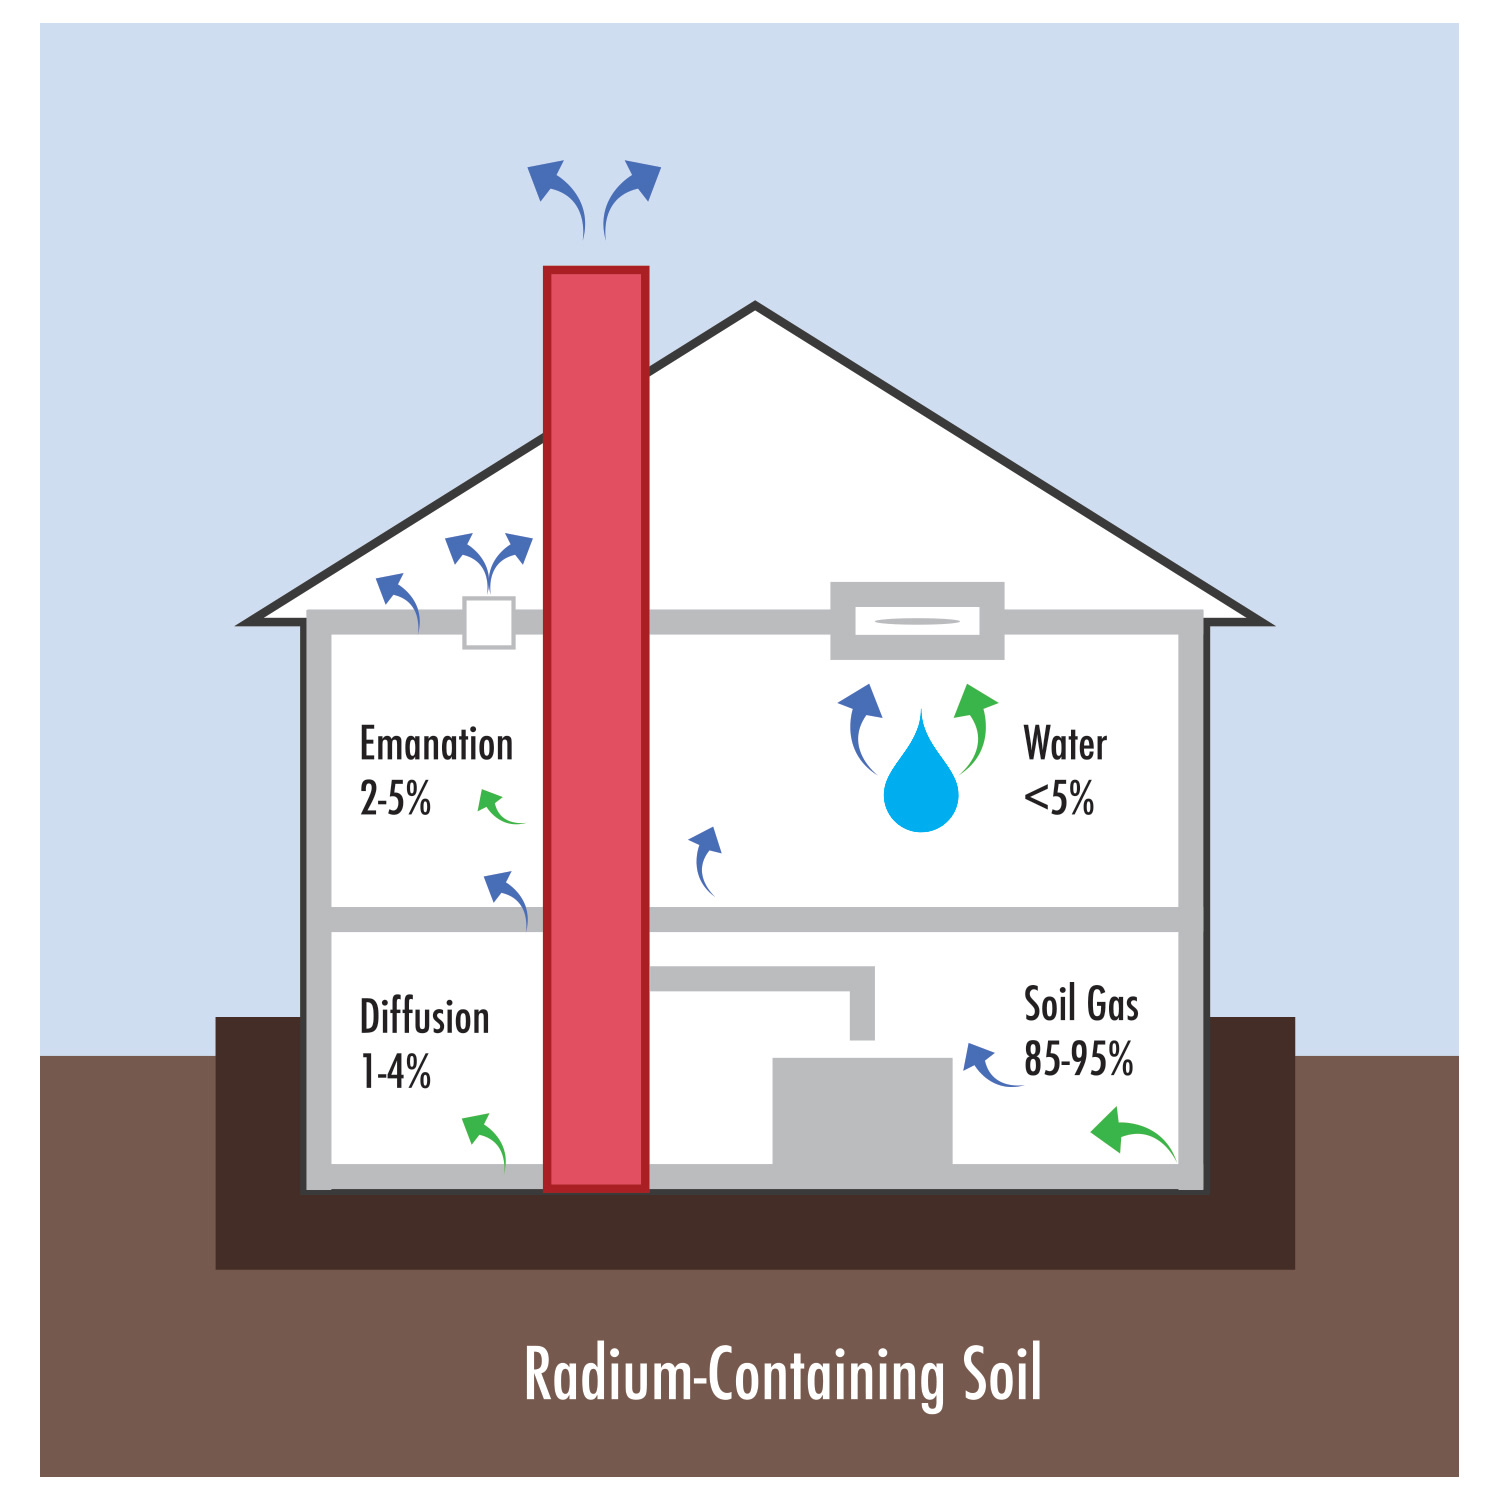 Where does radon come from?